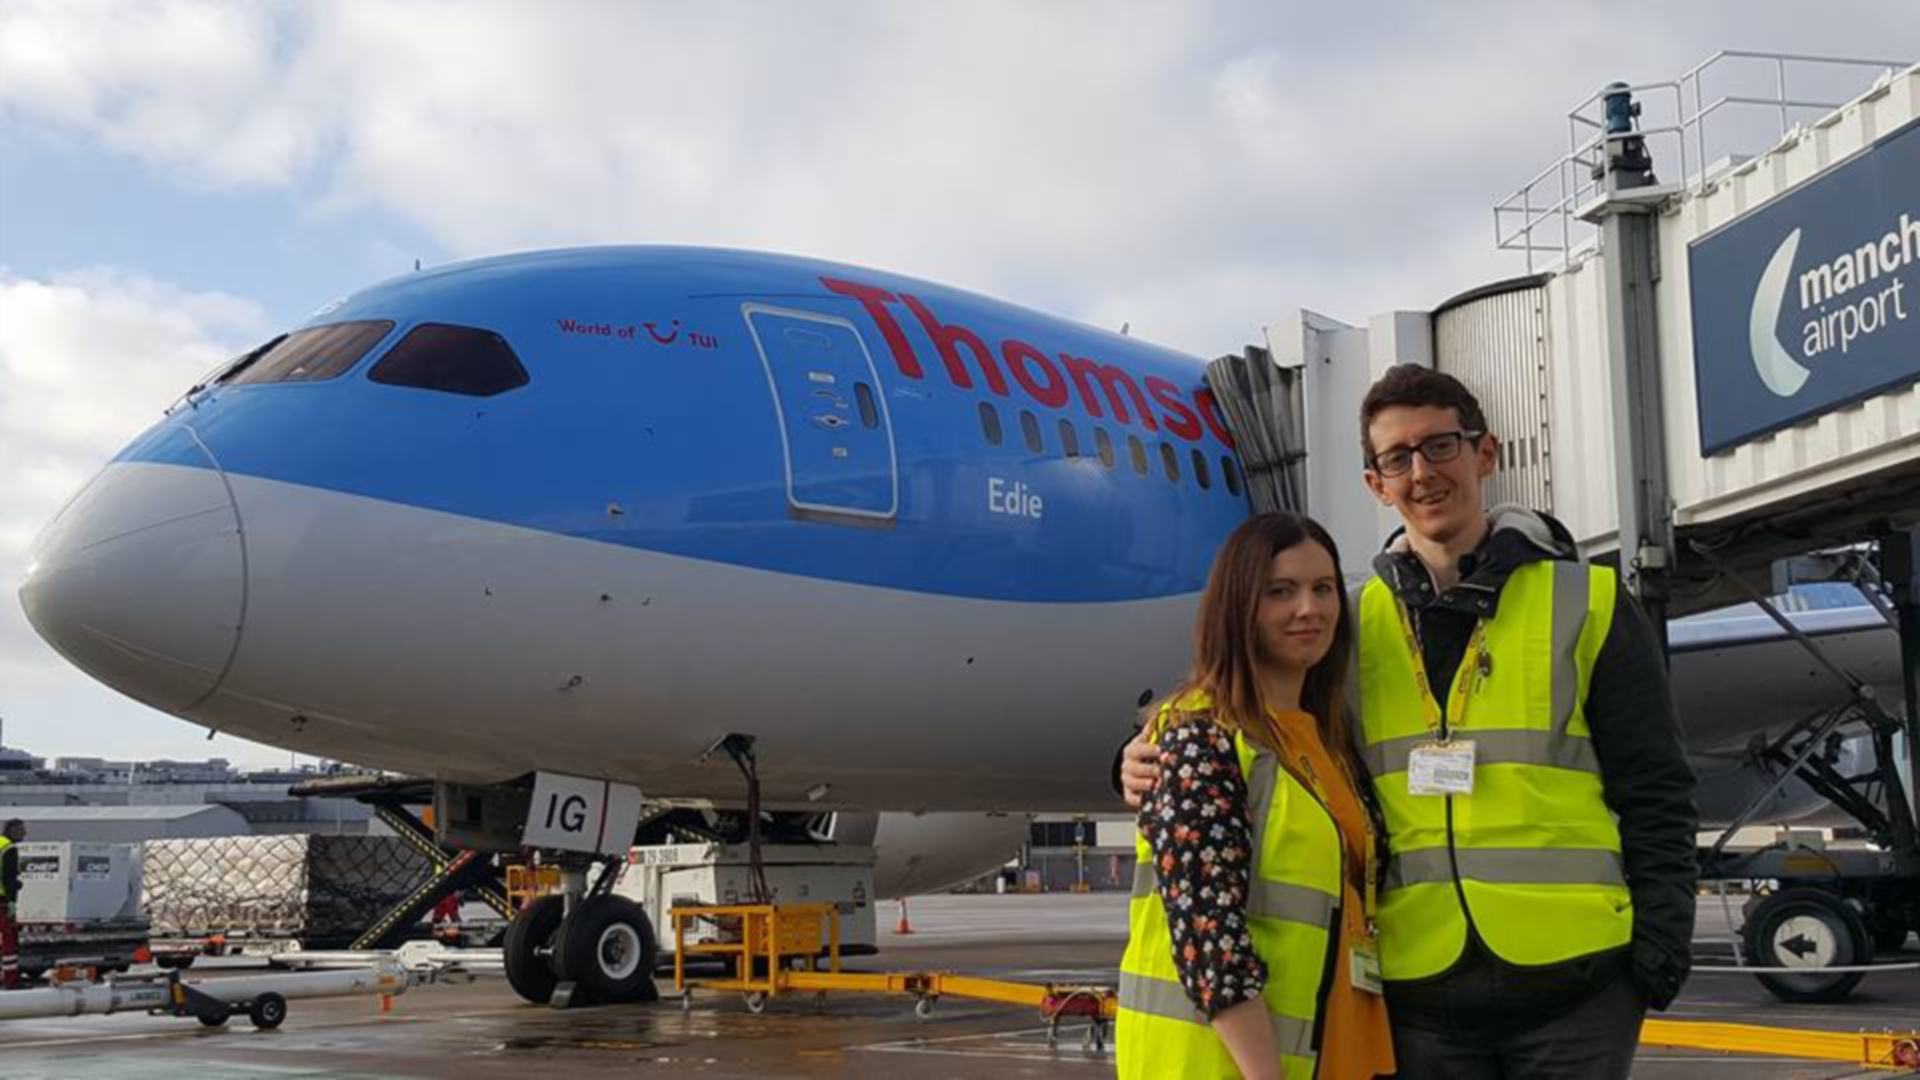 Cheryl and Tom Murphy with the plane named after daughter Edie